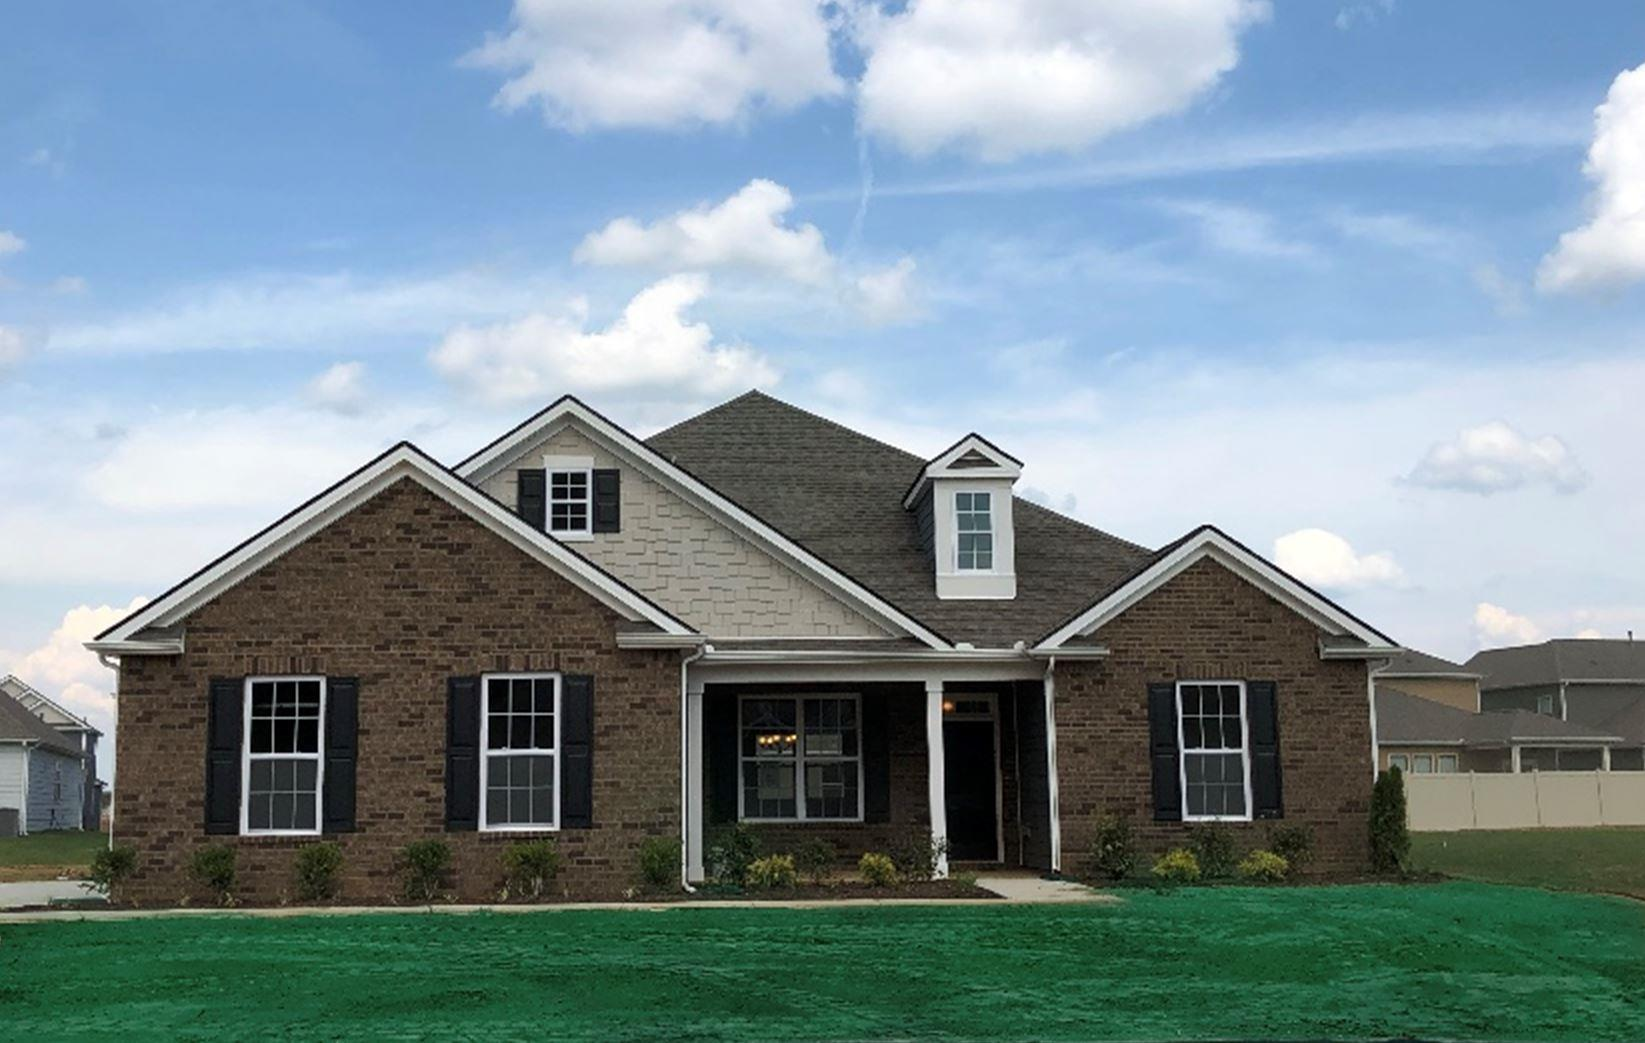 6622 Floral Court #146, Murfreesboro in Rutherford County County, TN 37128 Home for Sale